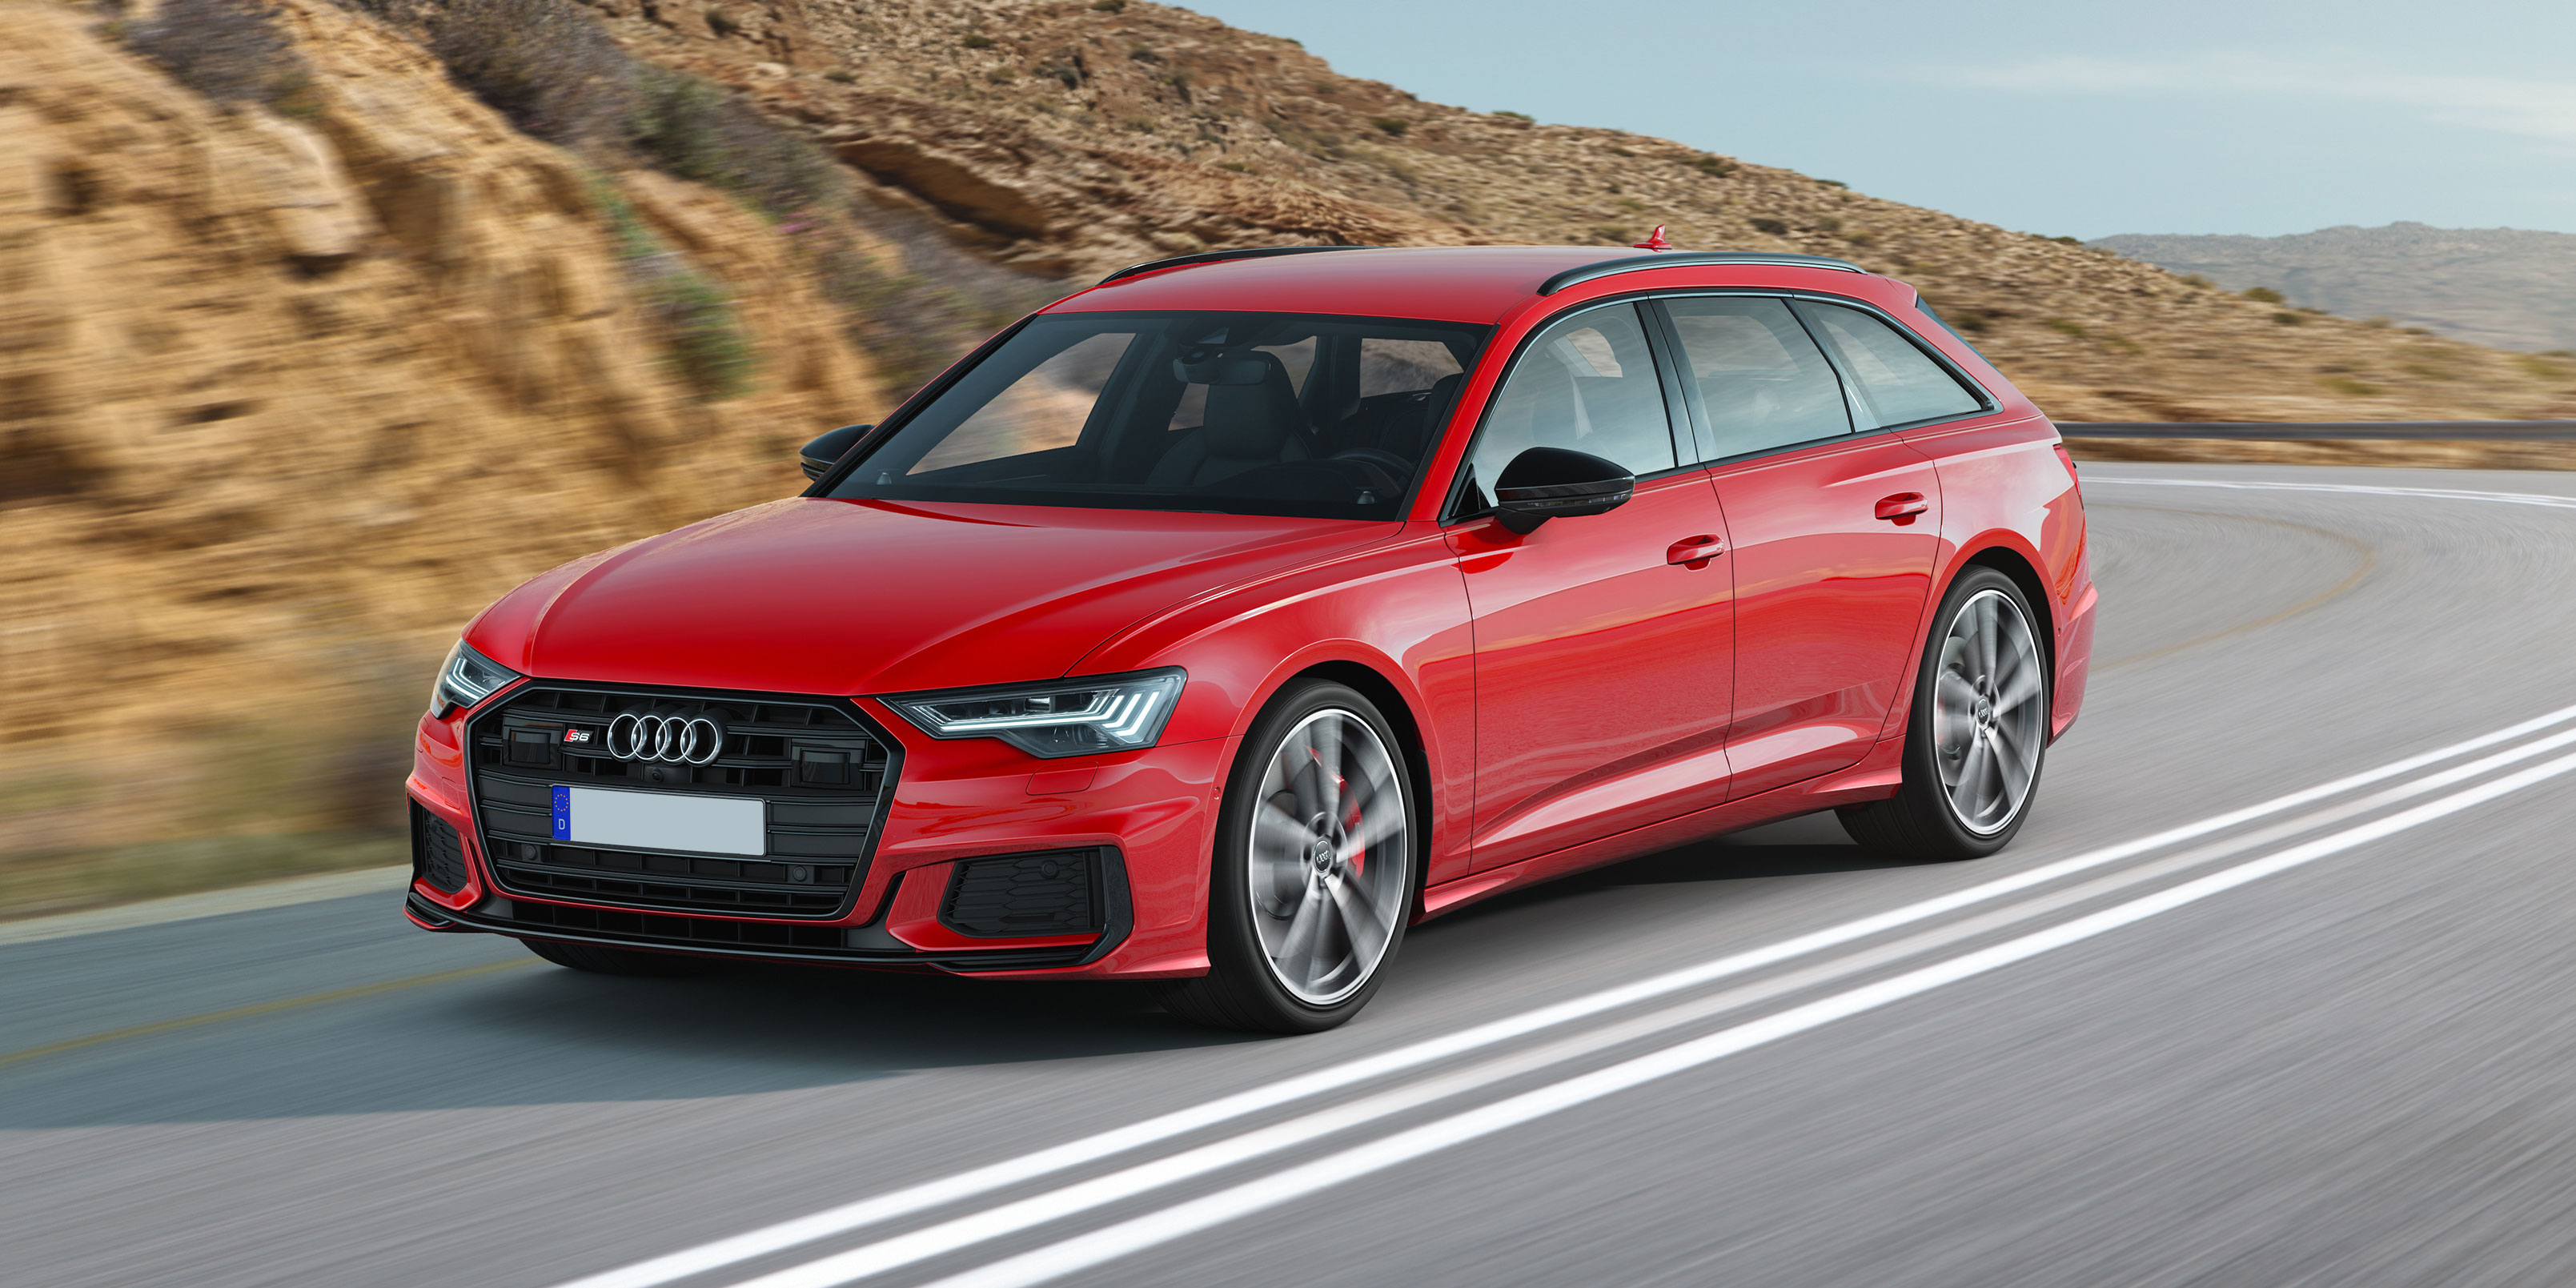 New Avant Audi Avant S6 New Avant Audi Audi S6 ReviewCarwow S6 ReviewCarwow New shQdtCr